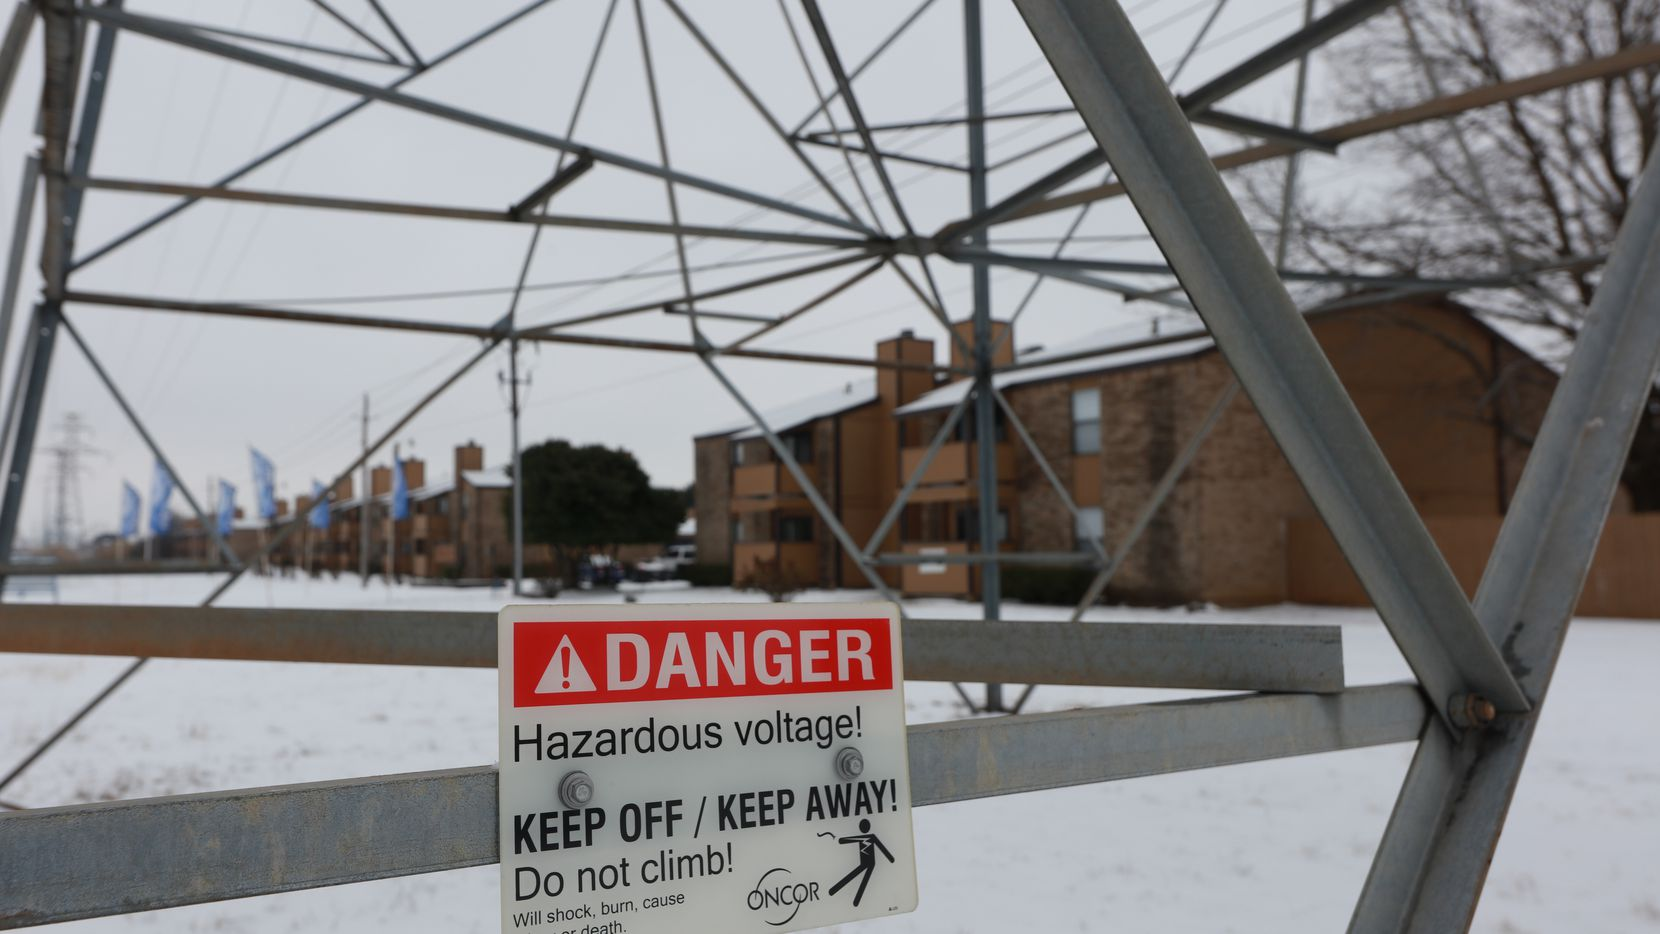 FORT WORTH, TX - FEBRAURY 17: A transmission tower supports power lines after a snow storm on Febraury 17, 2021 in Altamesa Blvd., and Crowley Rd. in Fort Worth, Texas.